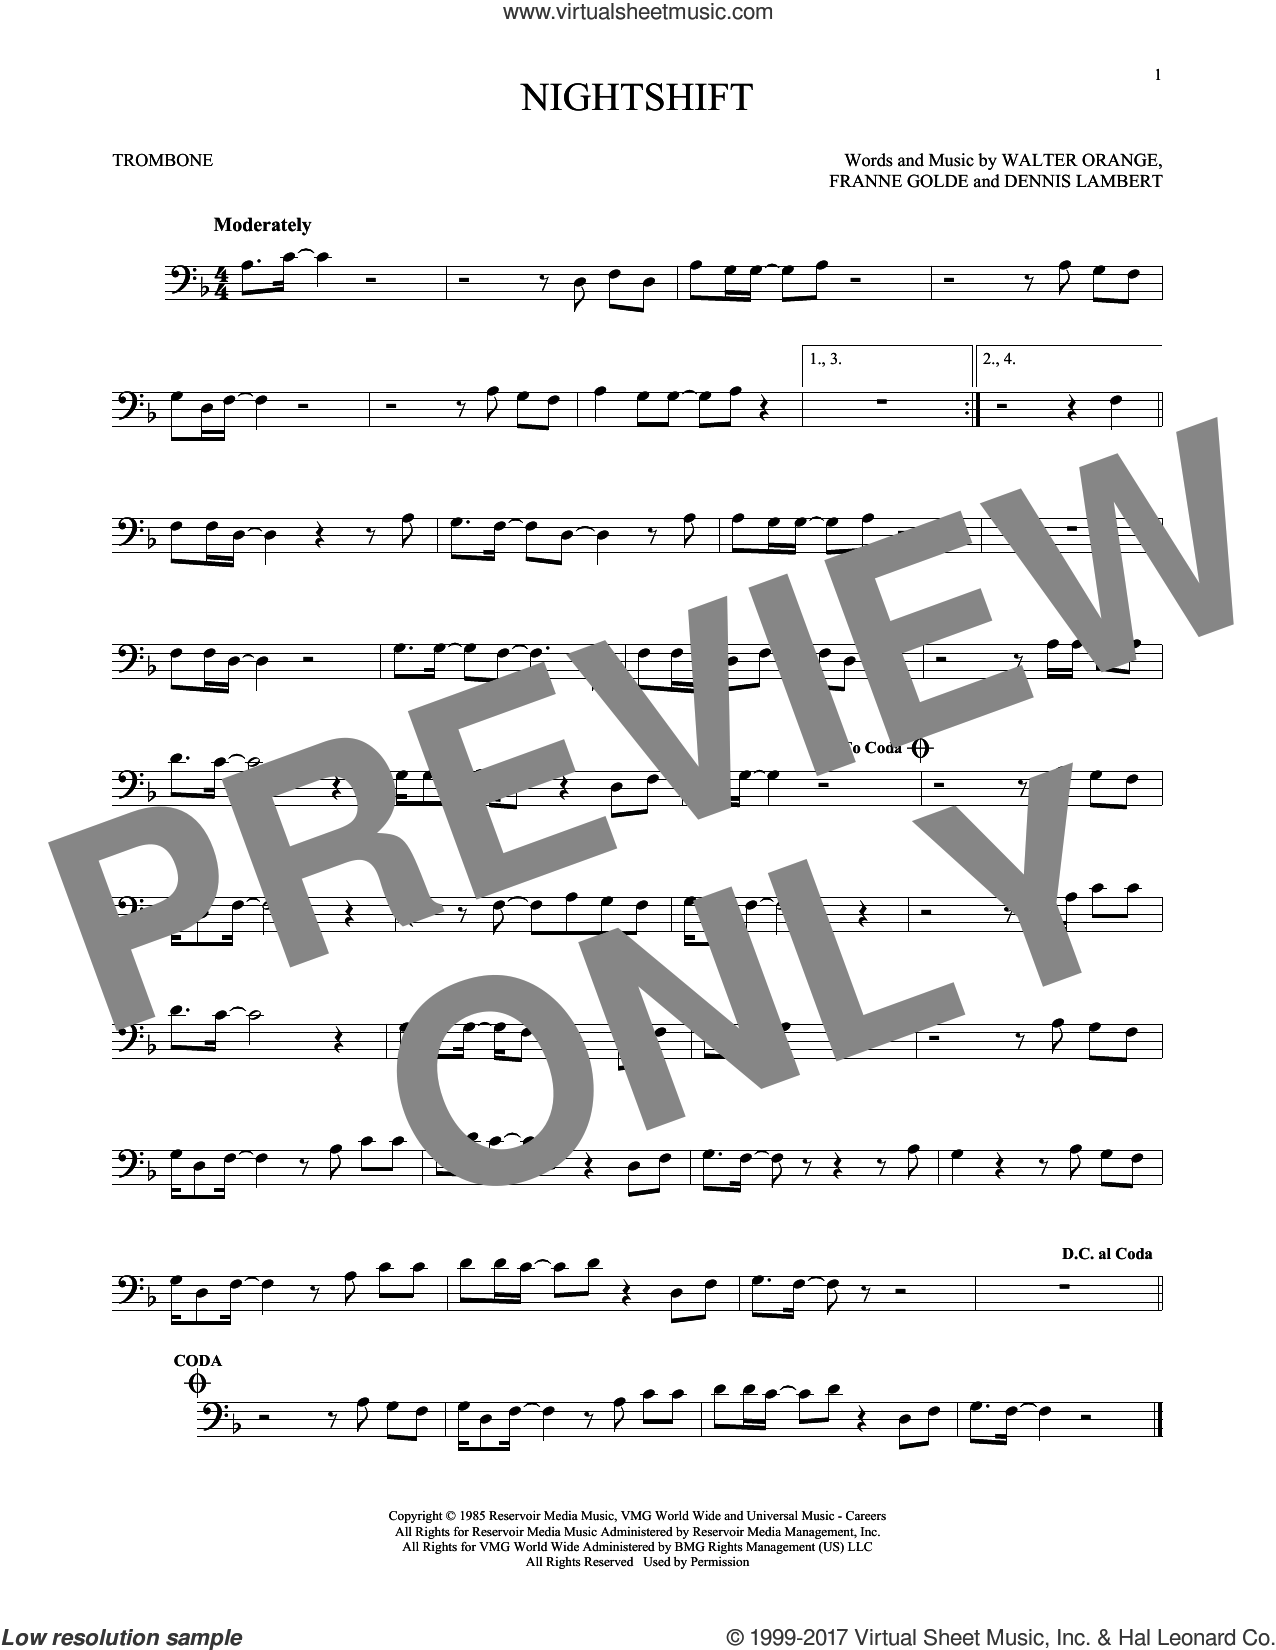 Nightshift sheet music for trombone solo by Dennis Lambert, The Commodores, Franne Golde and Walter Orange, intermediate skill level